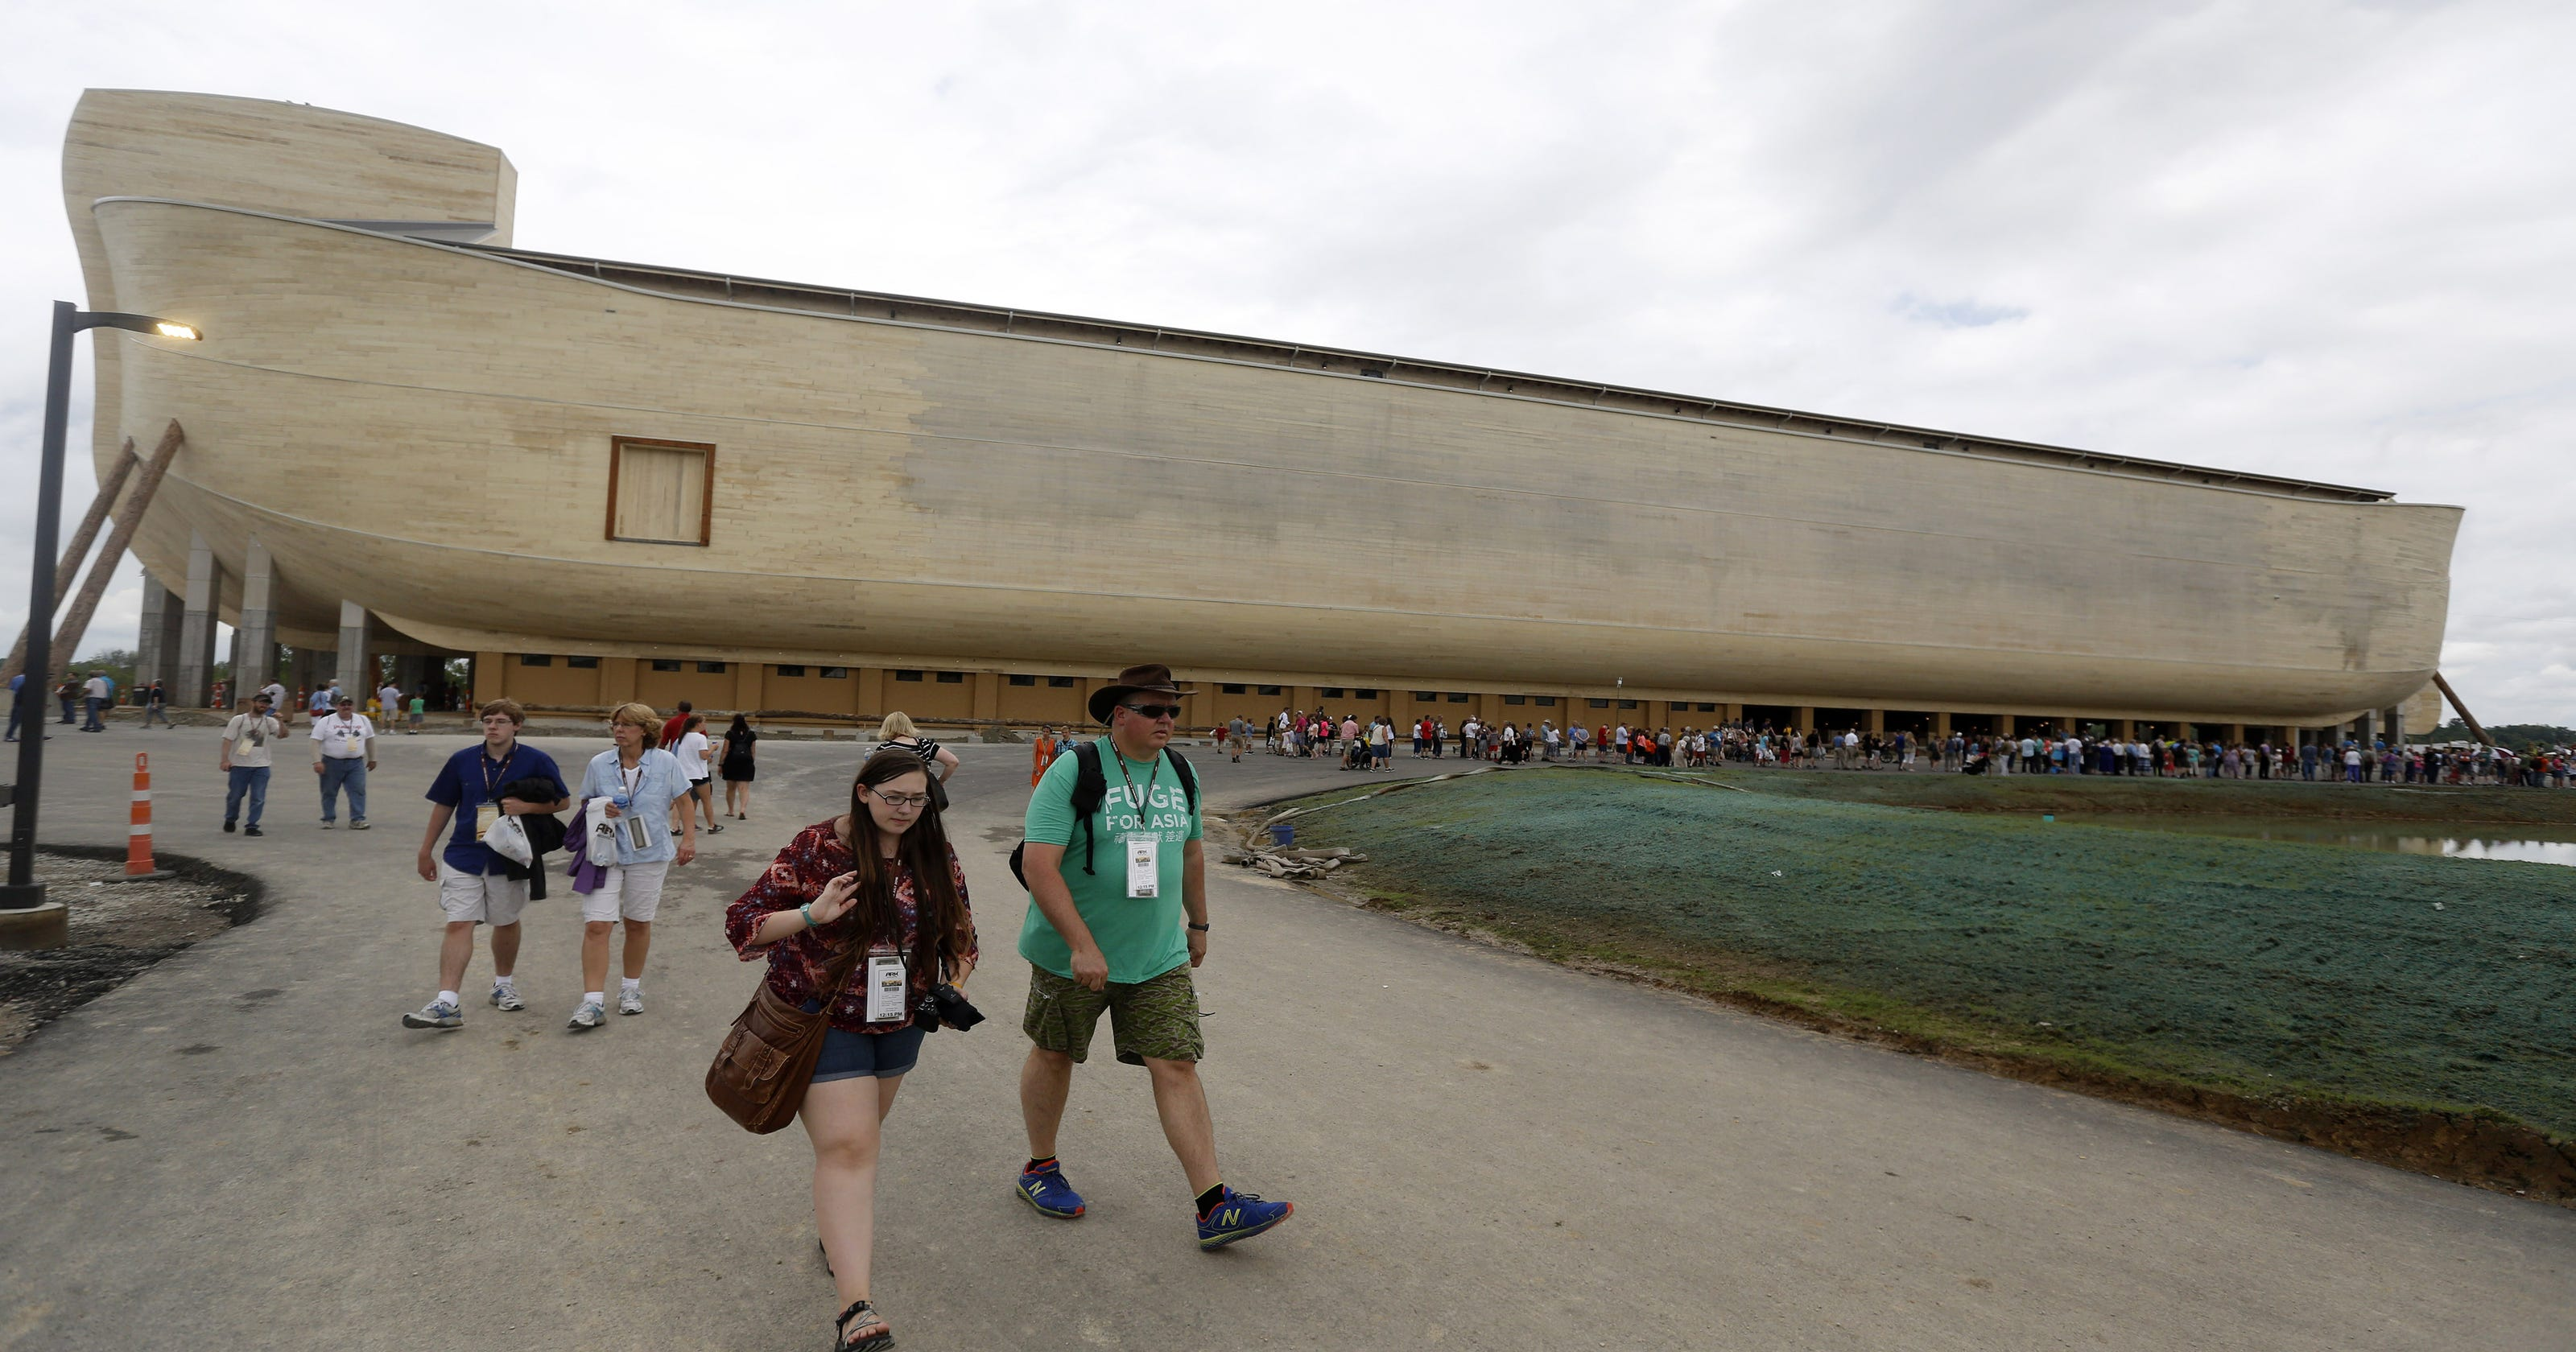 Noah's Ark theme park spars with advocacy group over visits by public school students